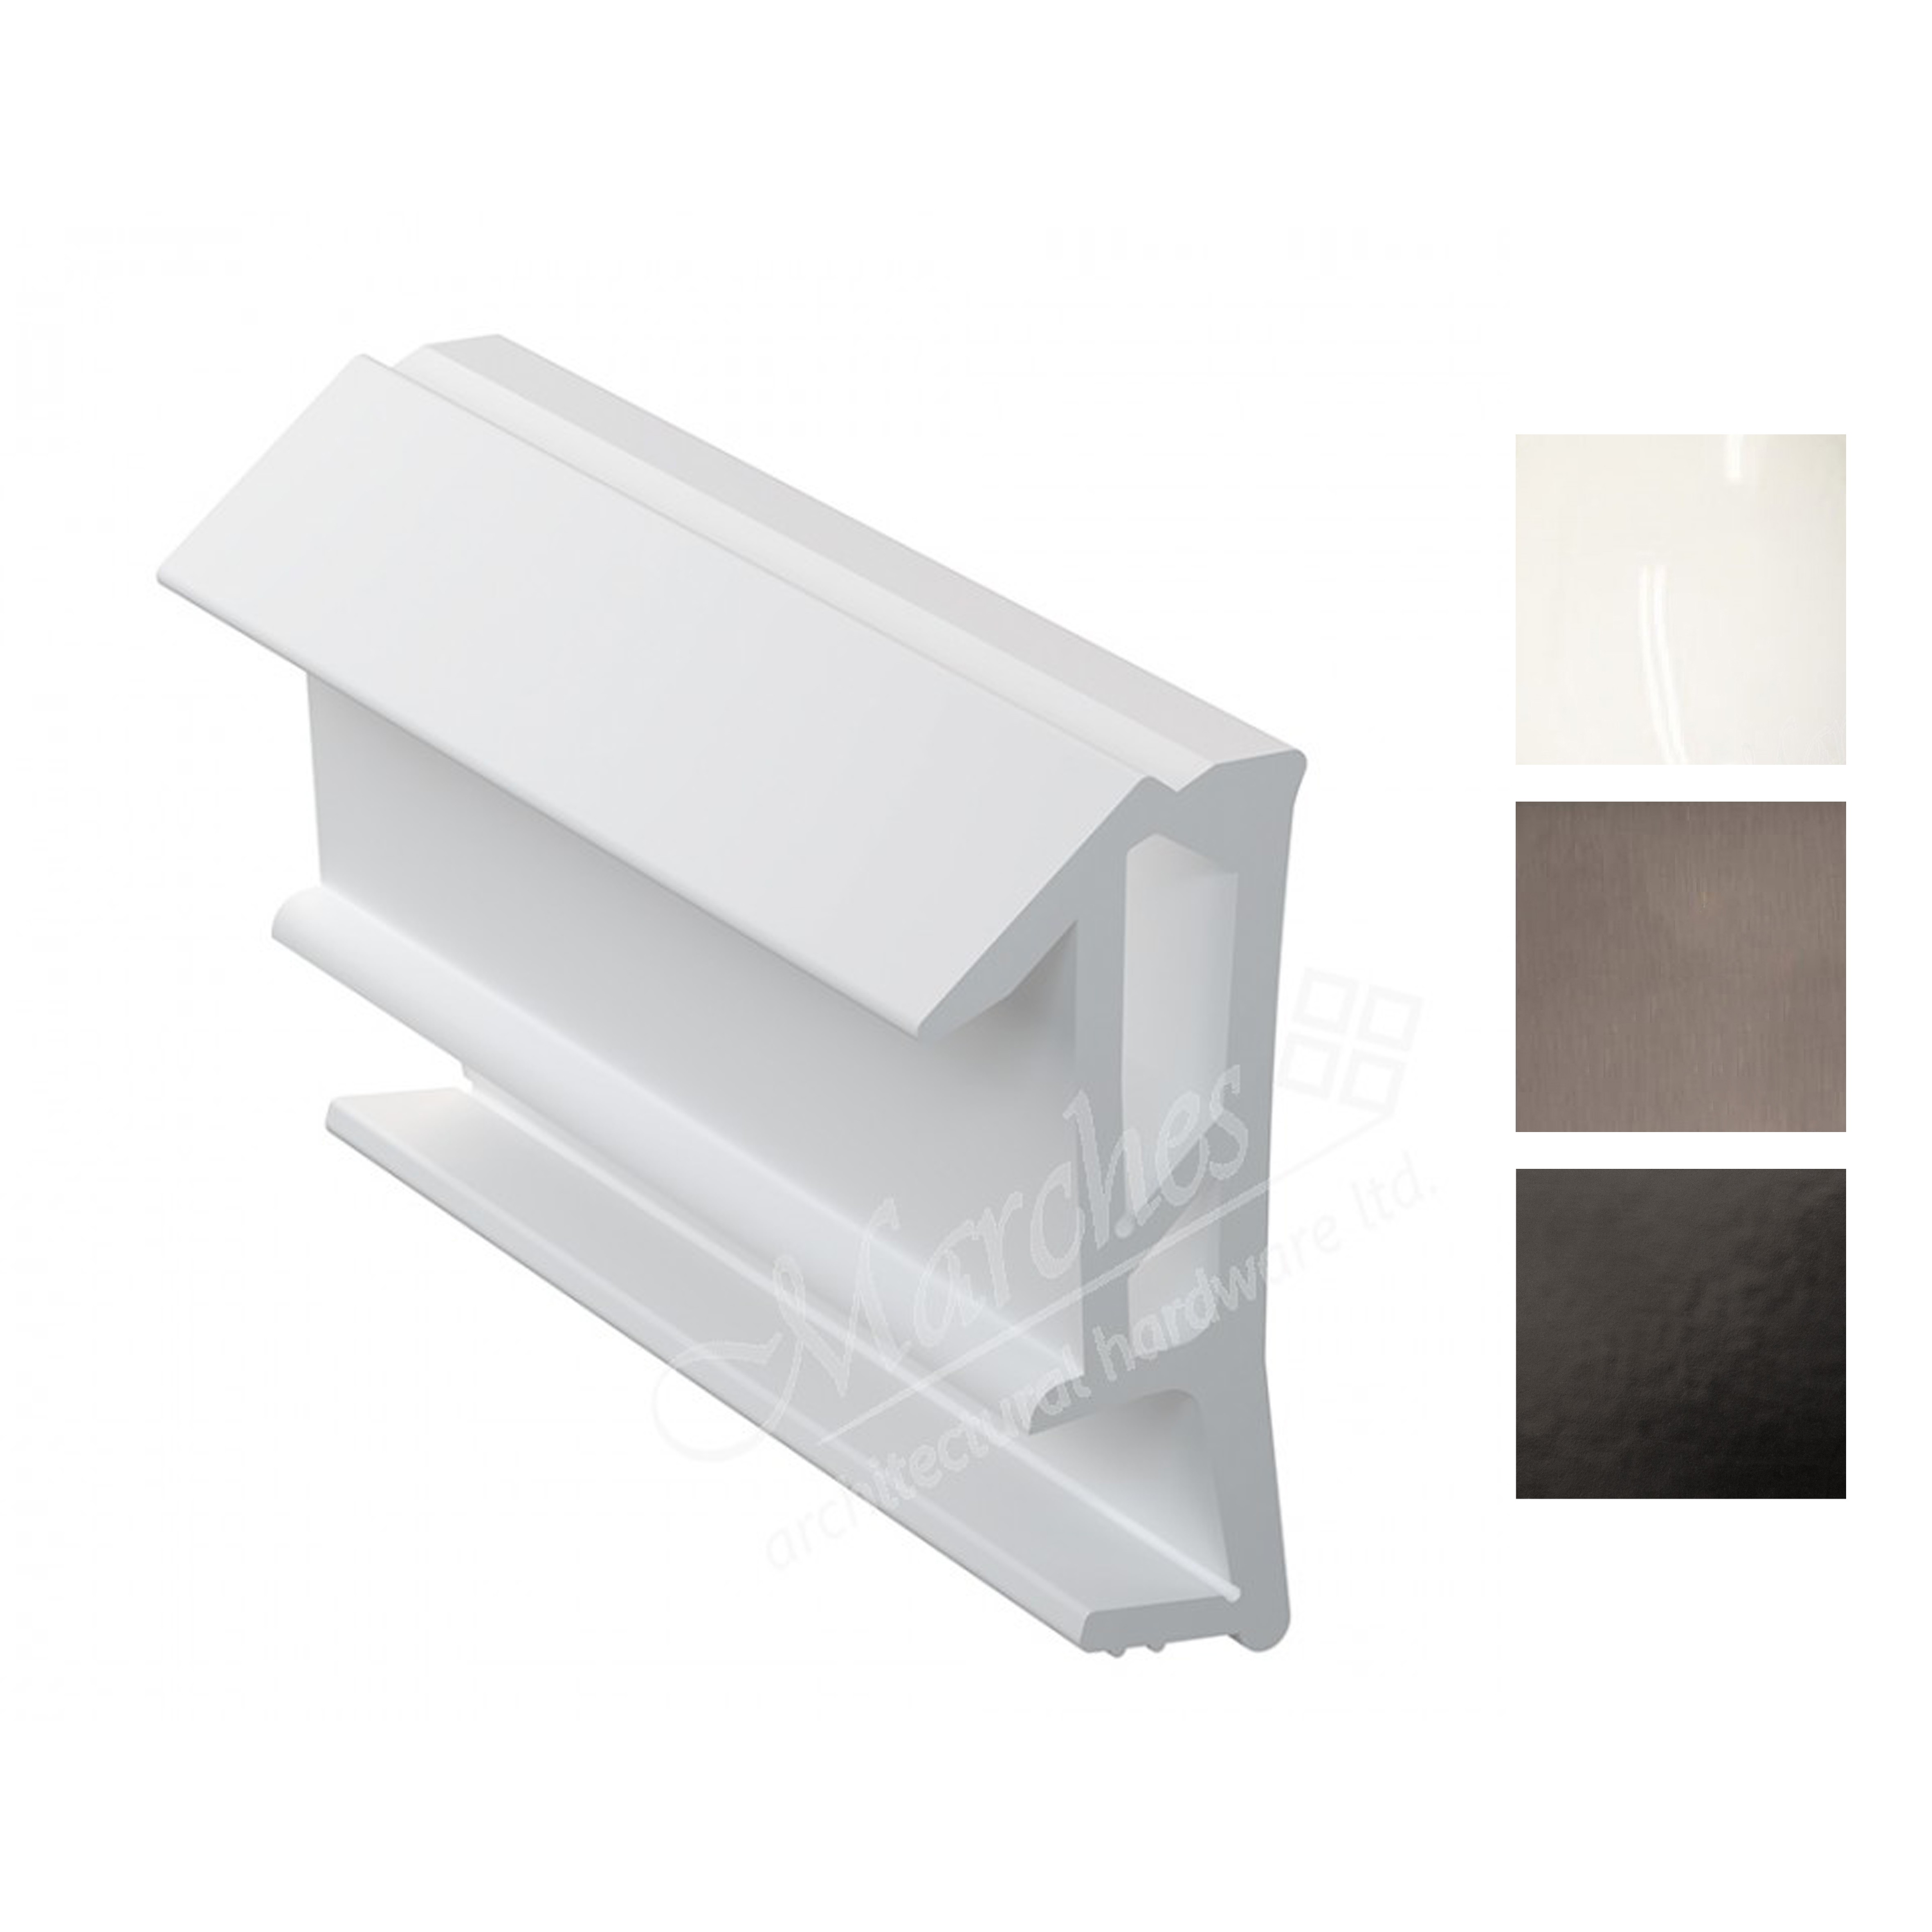 Deventer SPV124 15mm Rebate Weather Seal 150m - Various Finishes